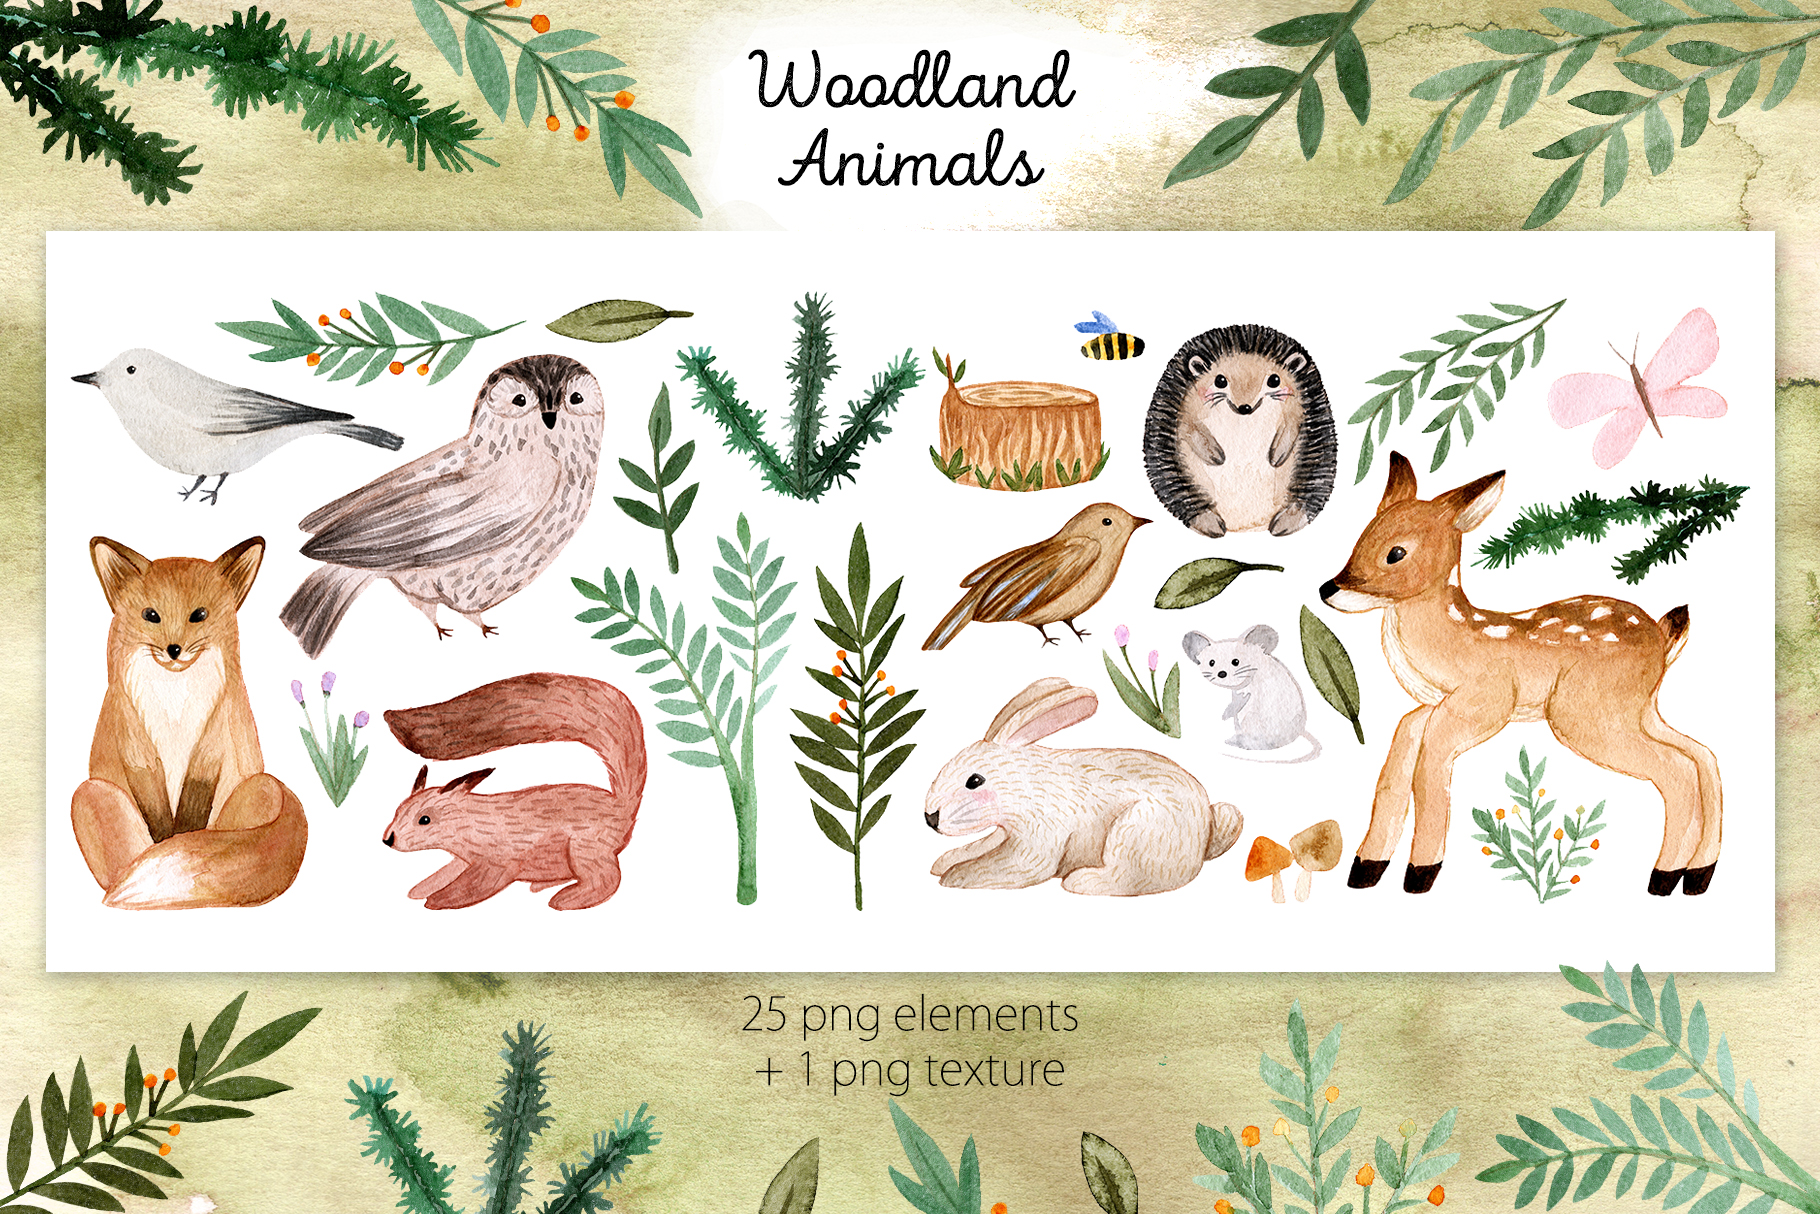 Woodland Animals. Patterns, Cliparts example image 2